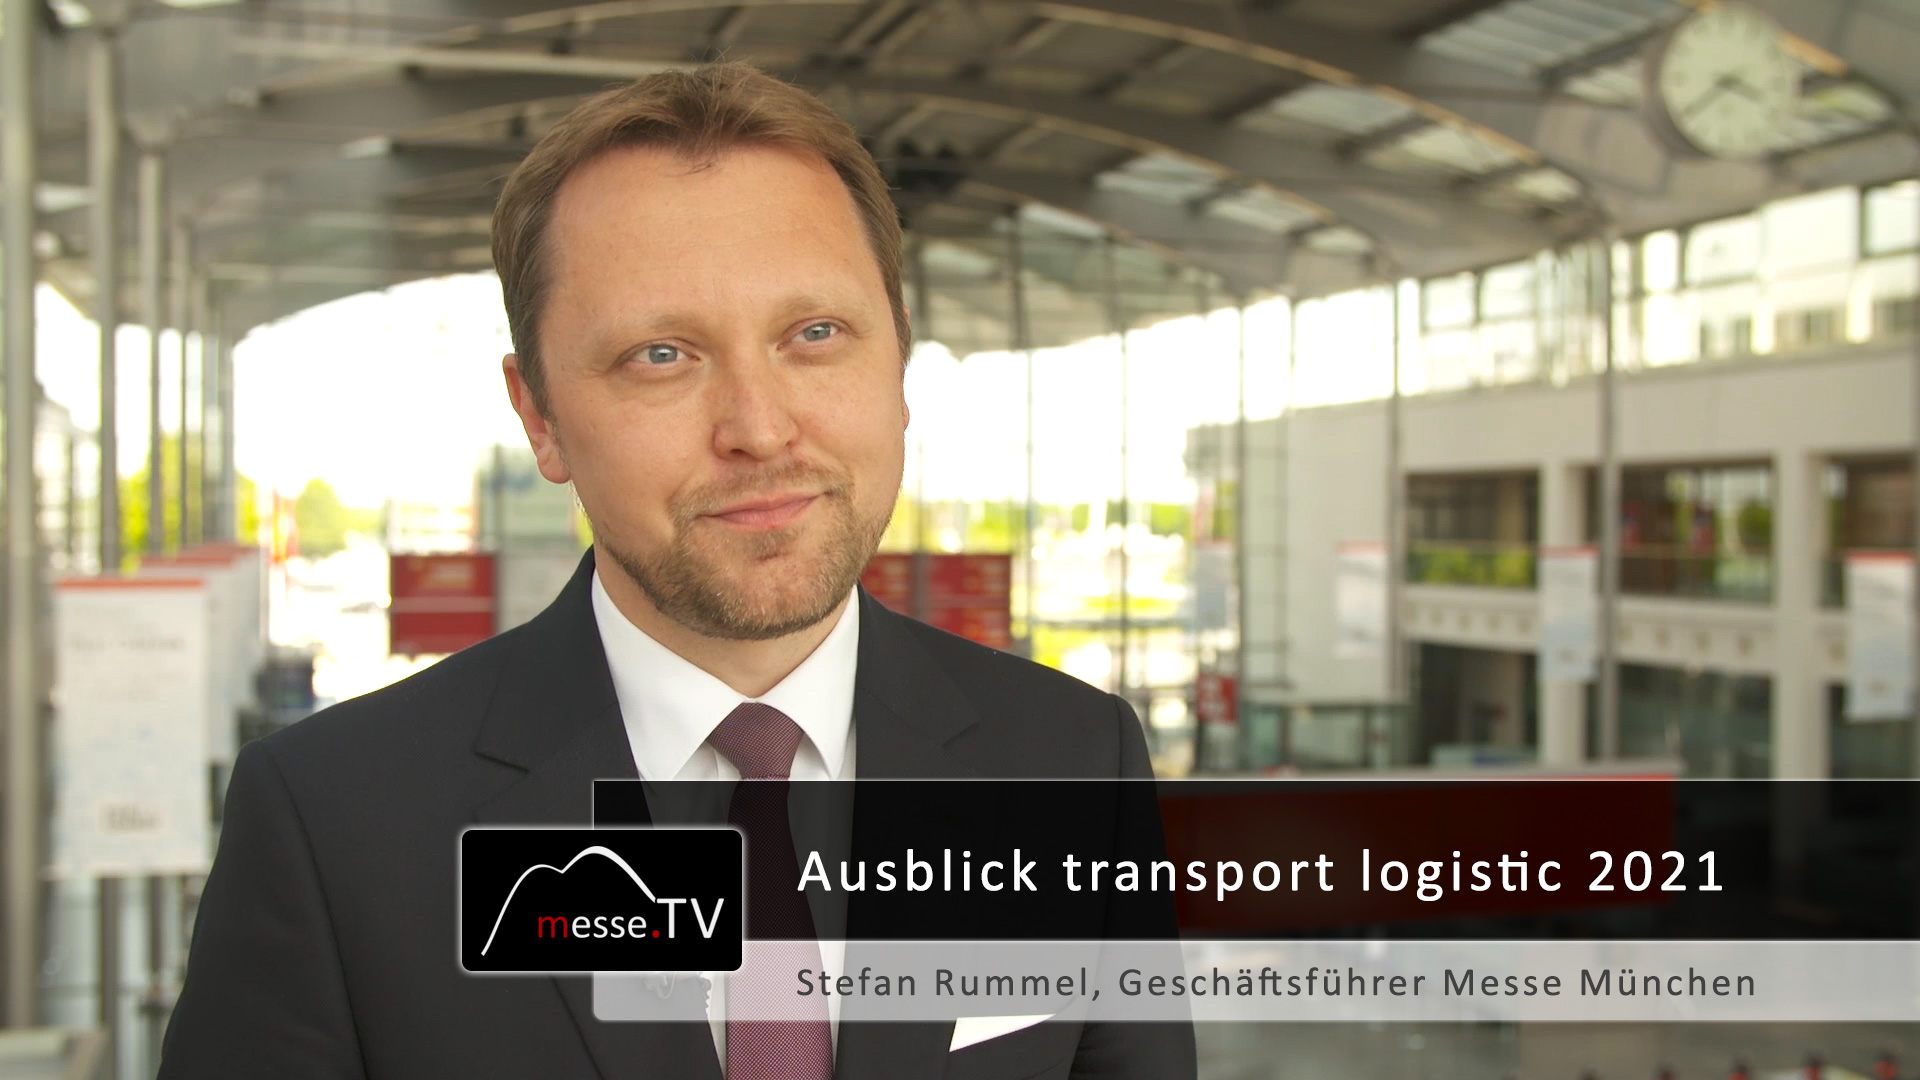 Ausblick transport logistic 2021